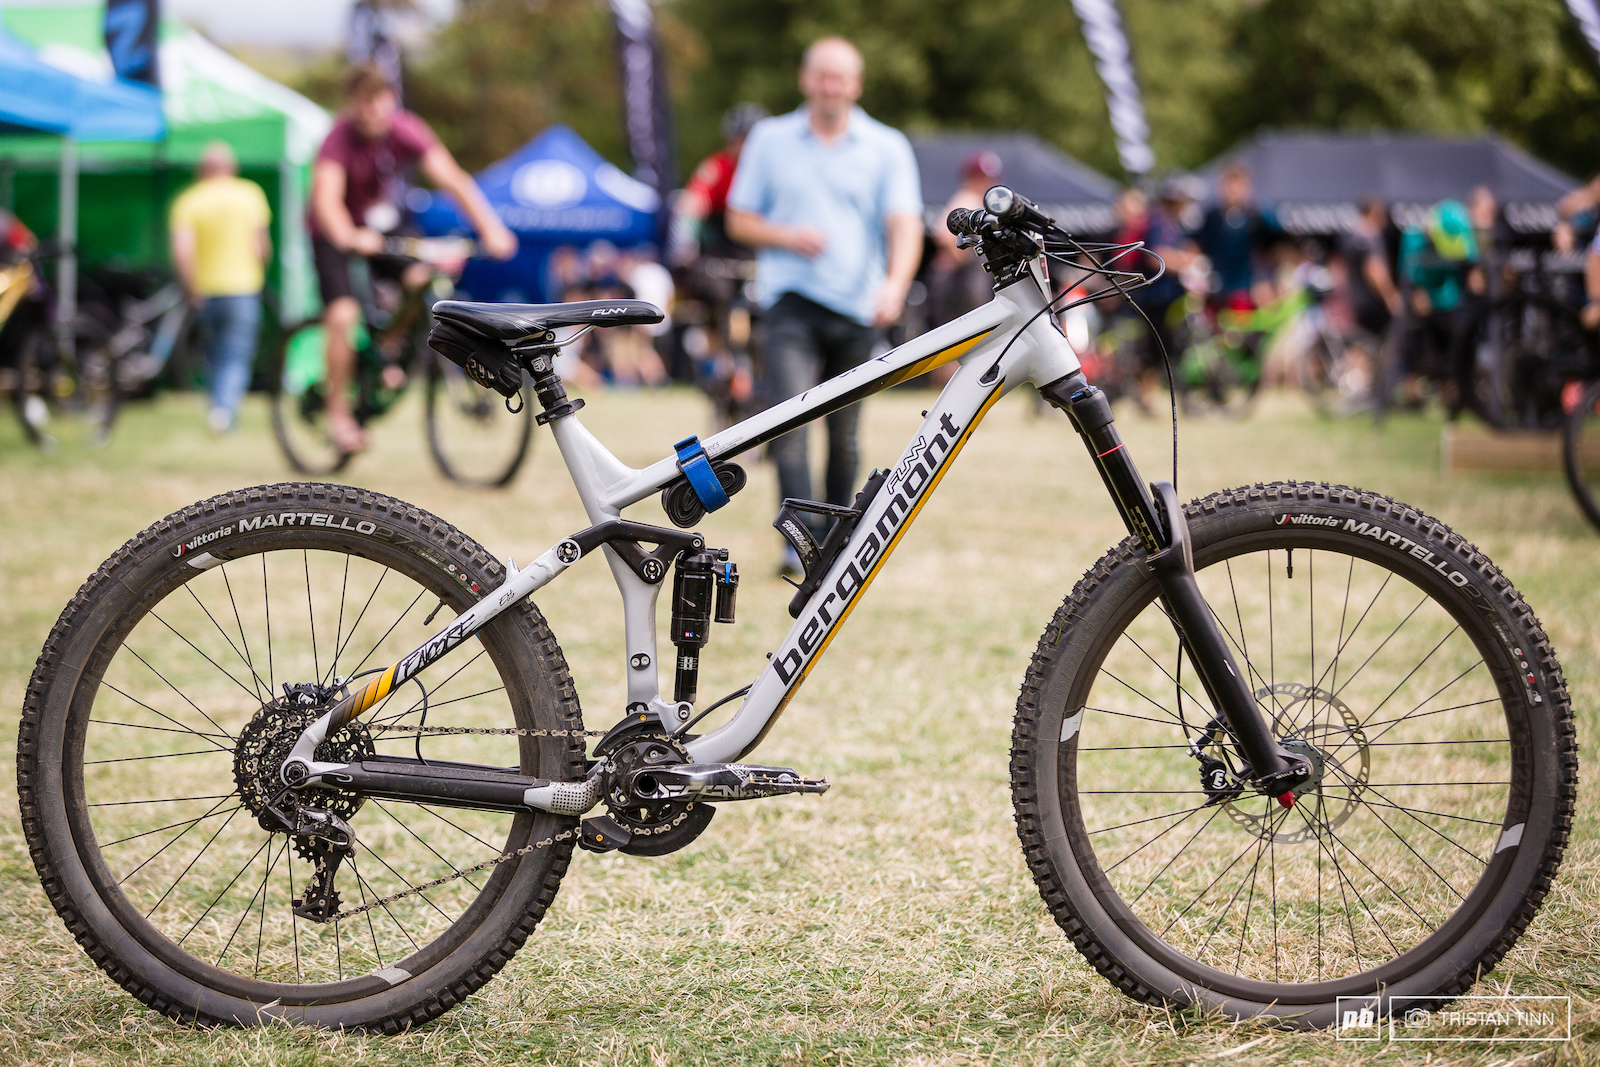 Micheal Eastons Bergamont Encore 650b with Ridge Pro carbon wheels Funn finishing kit a carbon chainstay and an aftermarket offset shock chip.